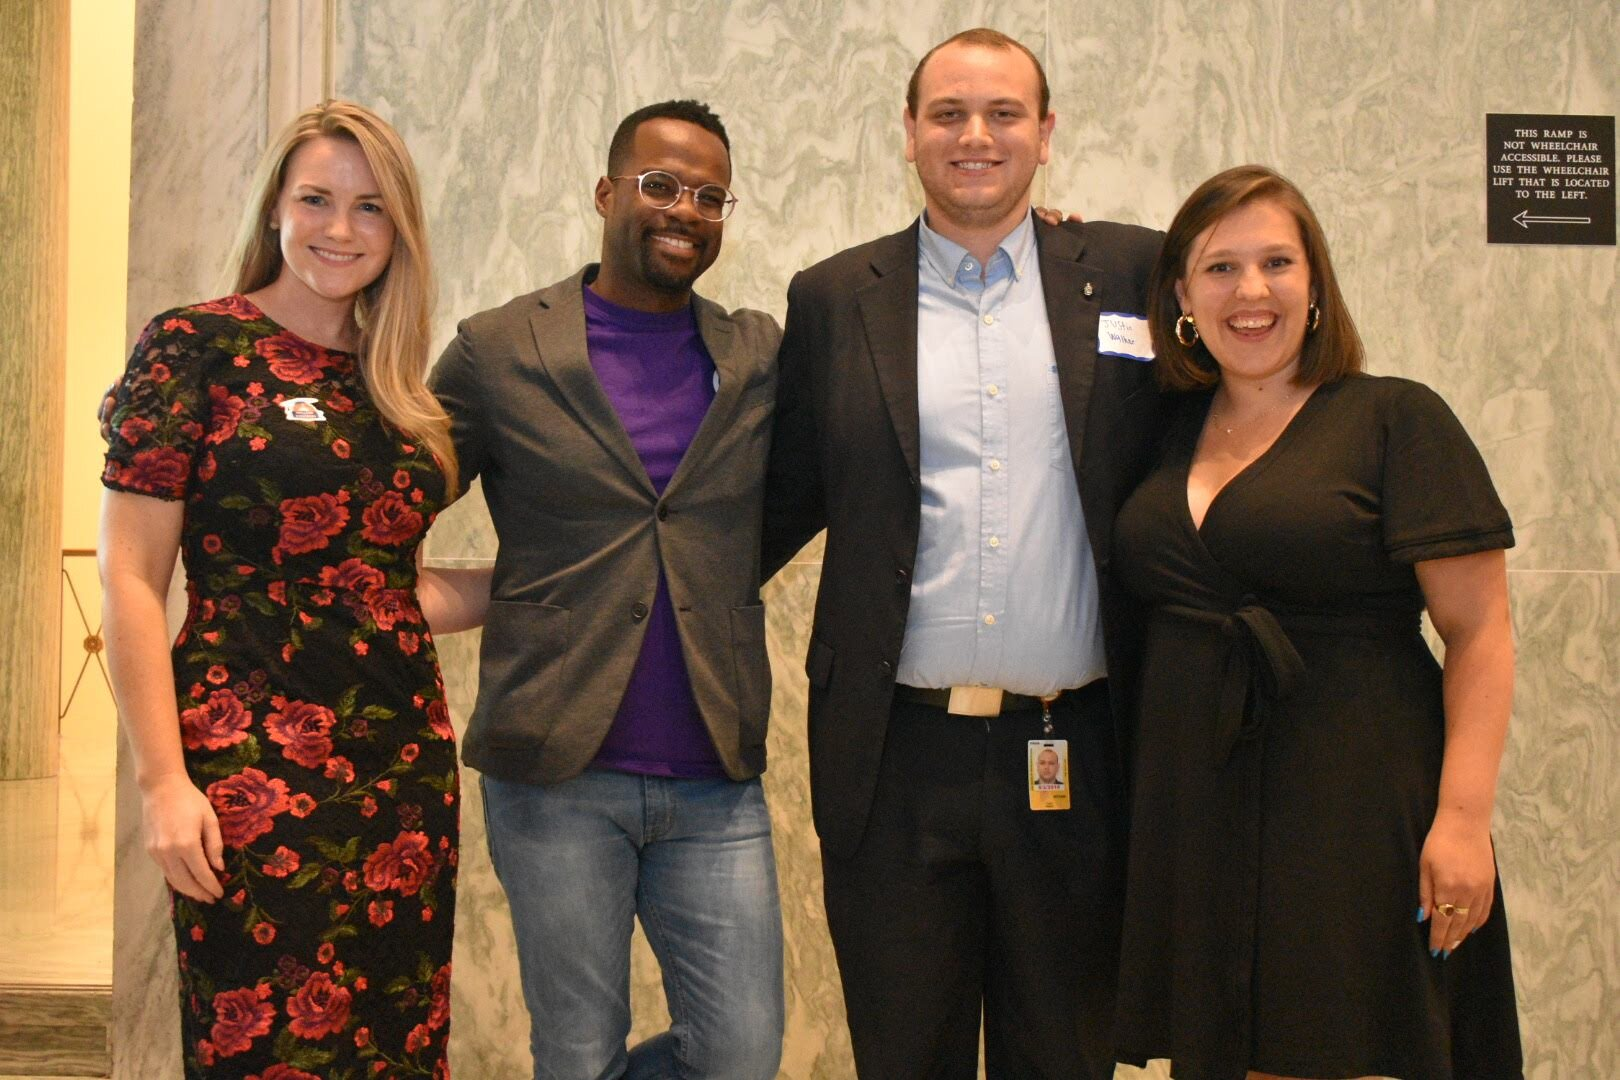 Left to right: Audrey Henson, Founder & CEO, College to Congress Orie Ward, Executive Director, The Purple Aisle Justin W, Student and public policy winner Maria Giannopouloss, Google Civics Outreach